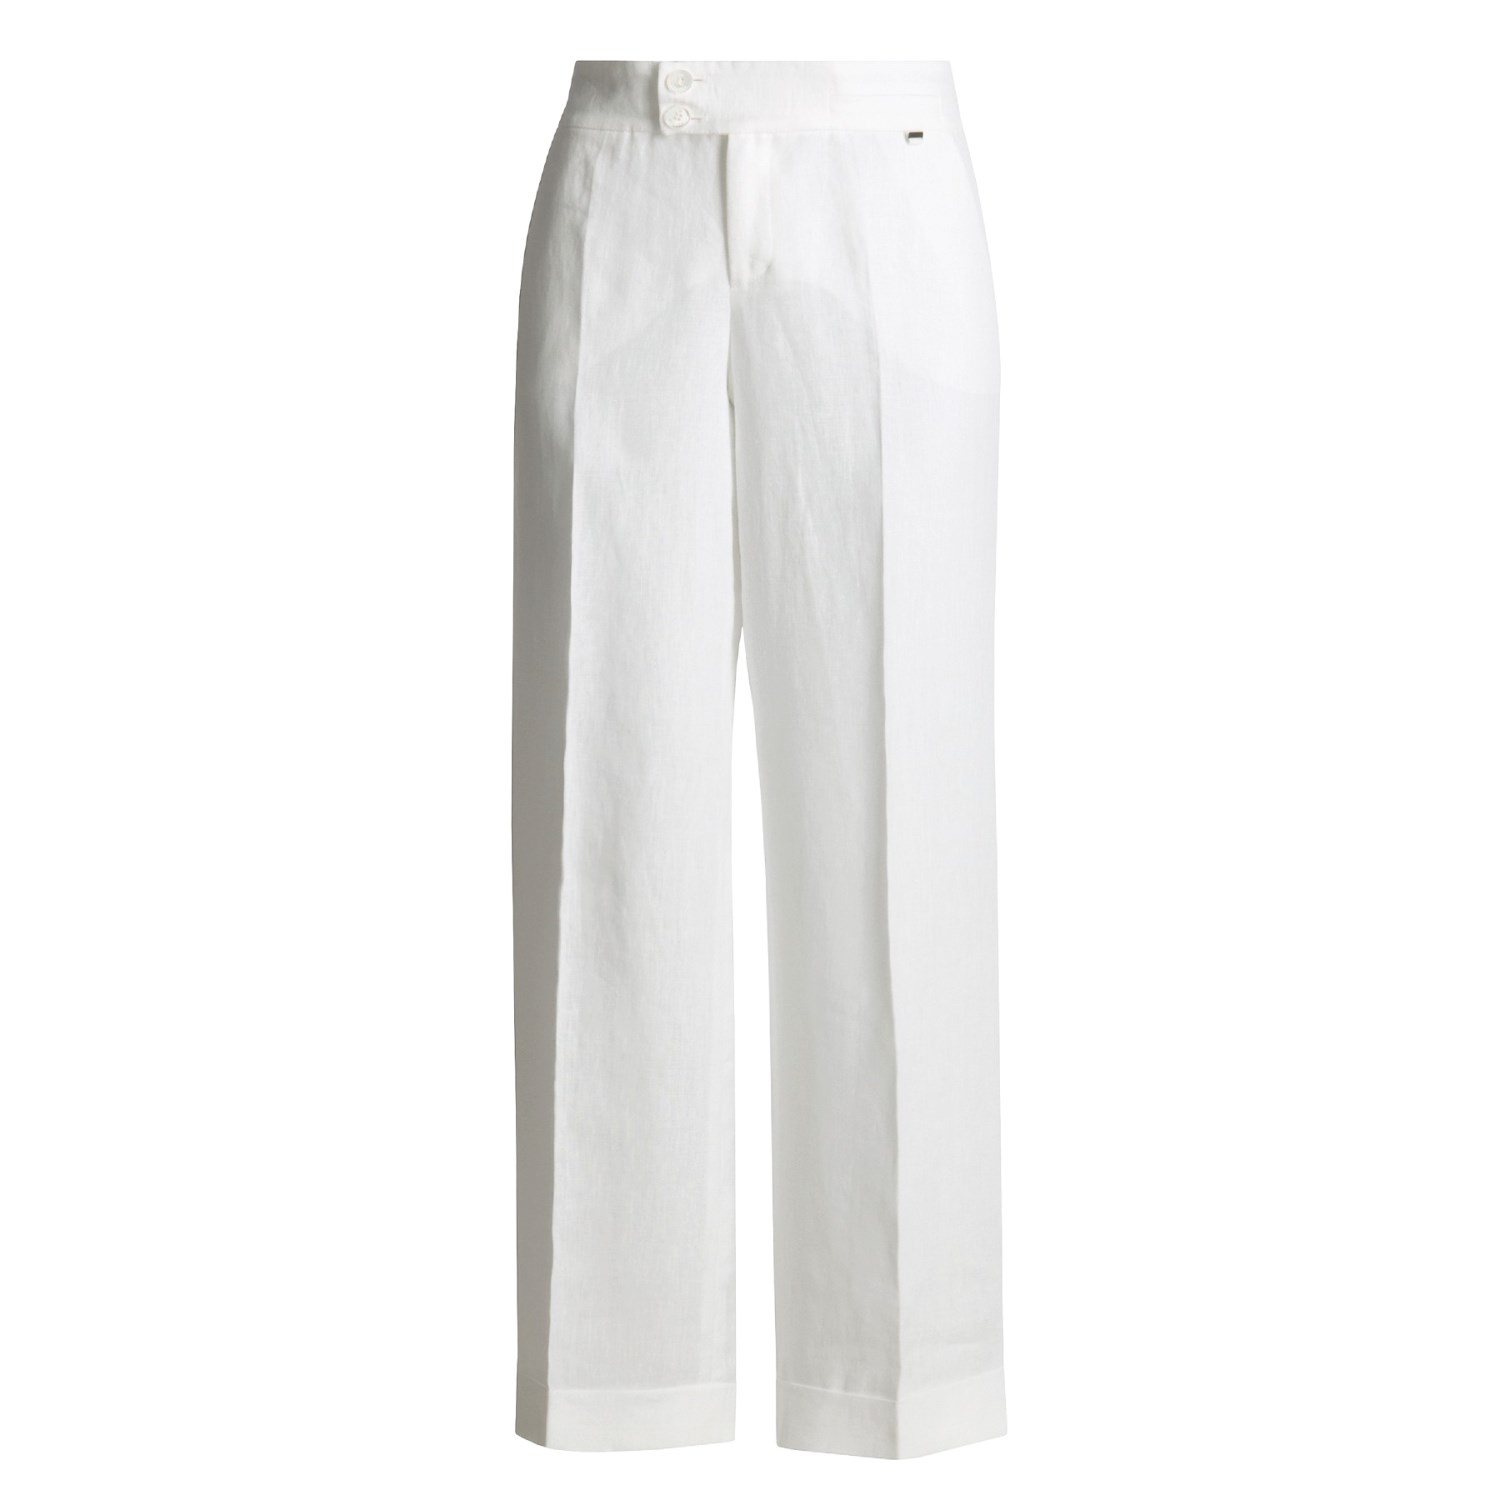 Slack Pants For Women